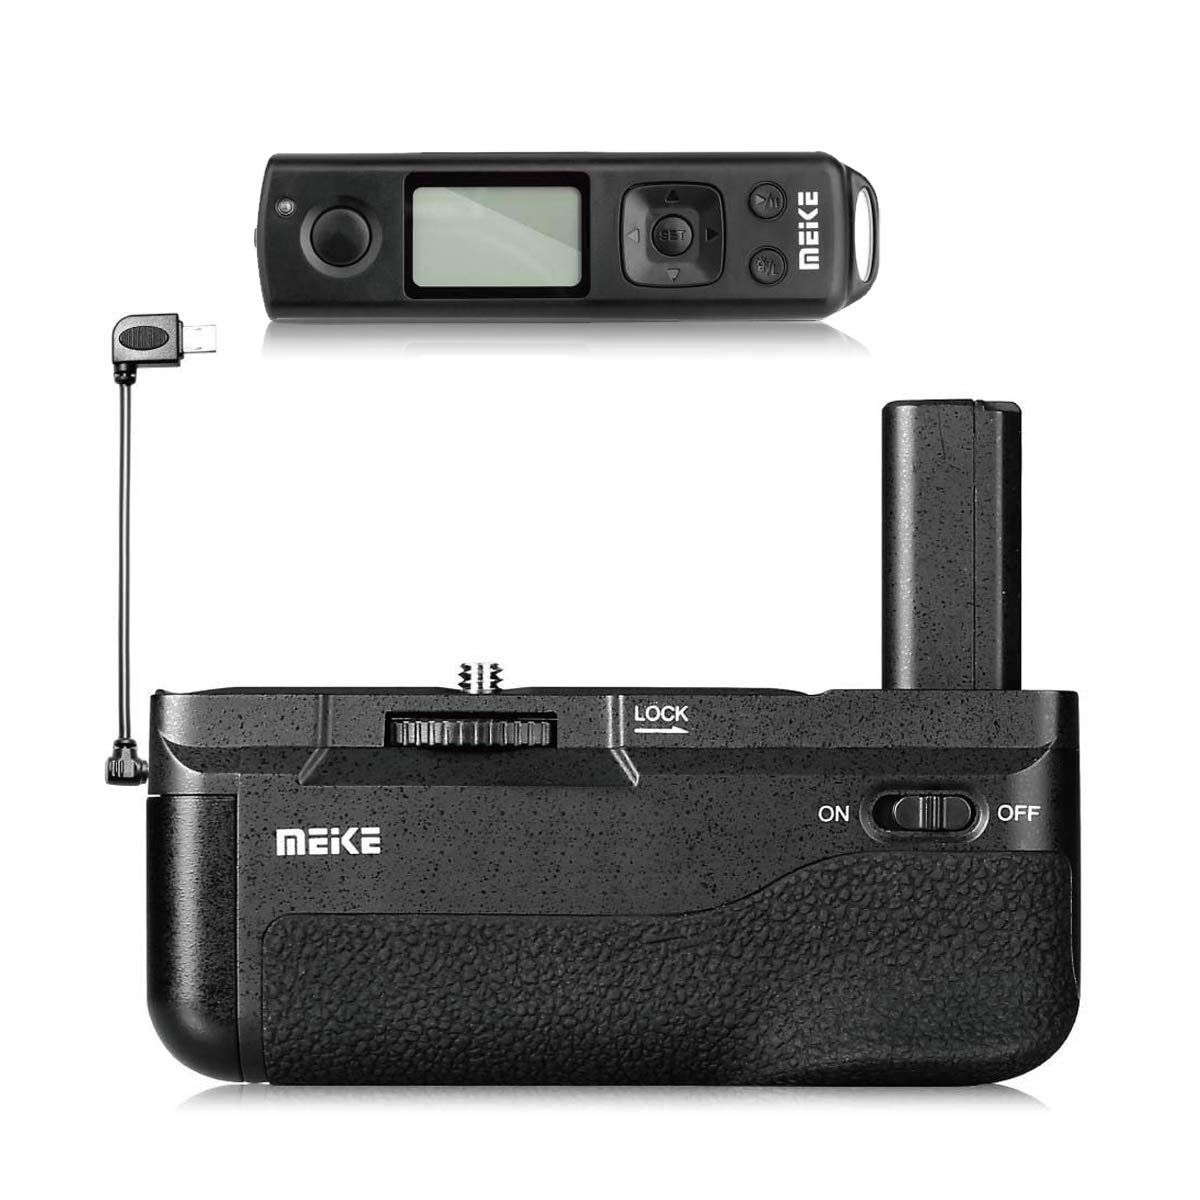 Meike A6300 Battery Grip, A6000 Battery Grip, MK-A6300 PRO Built-in Battery Handle 2.4GHZ Remote Controller Up to 100M to Control Shooting for Sony a6000, a6300 Camera